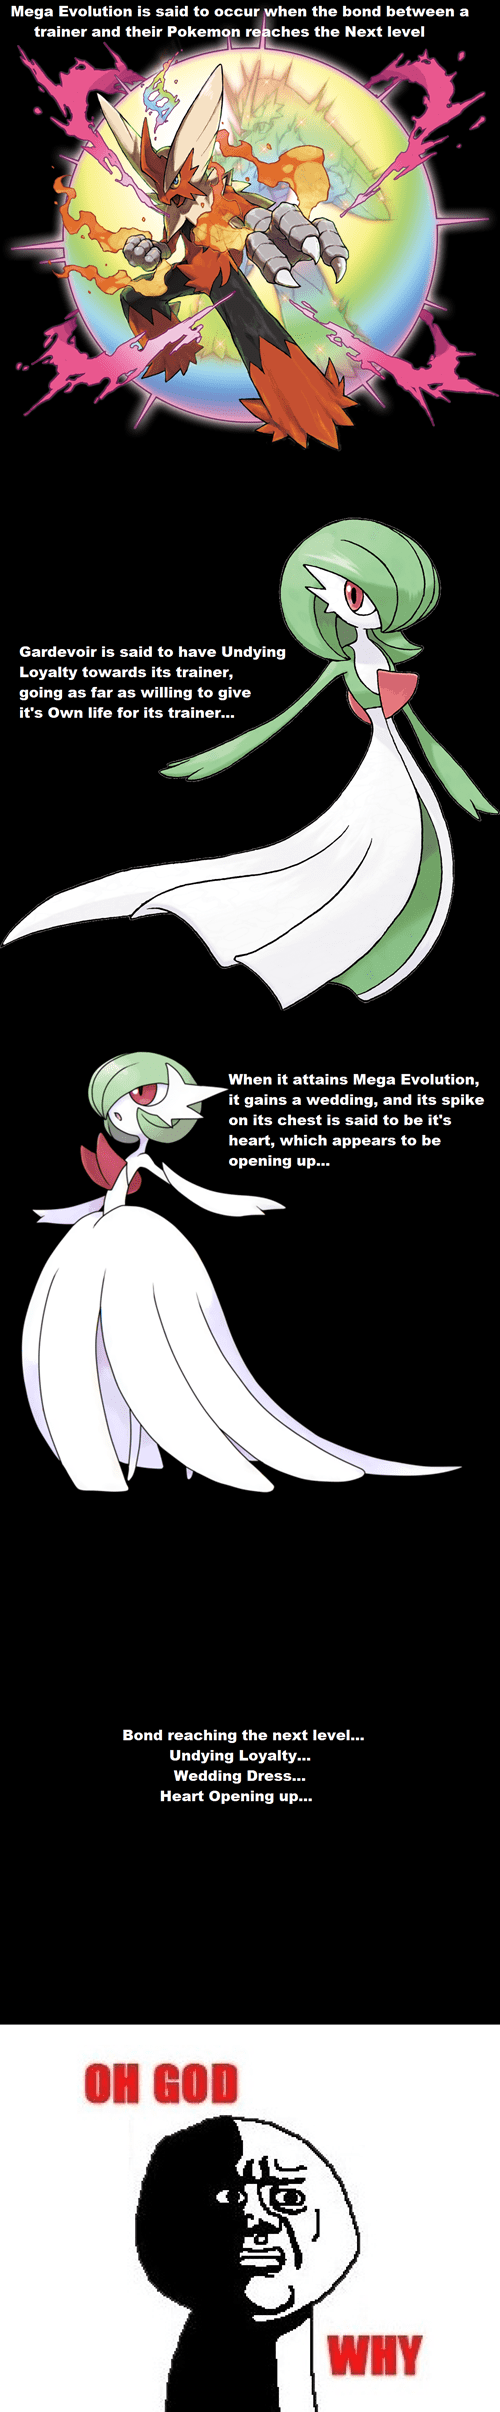 Pokémon,marriage,mega evolution